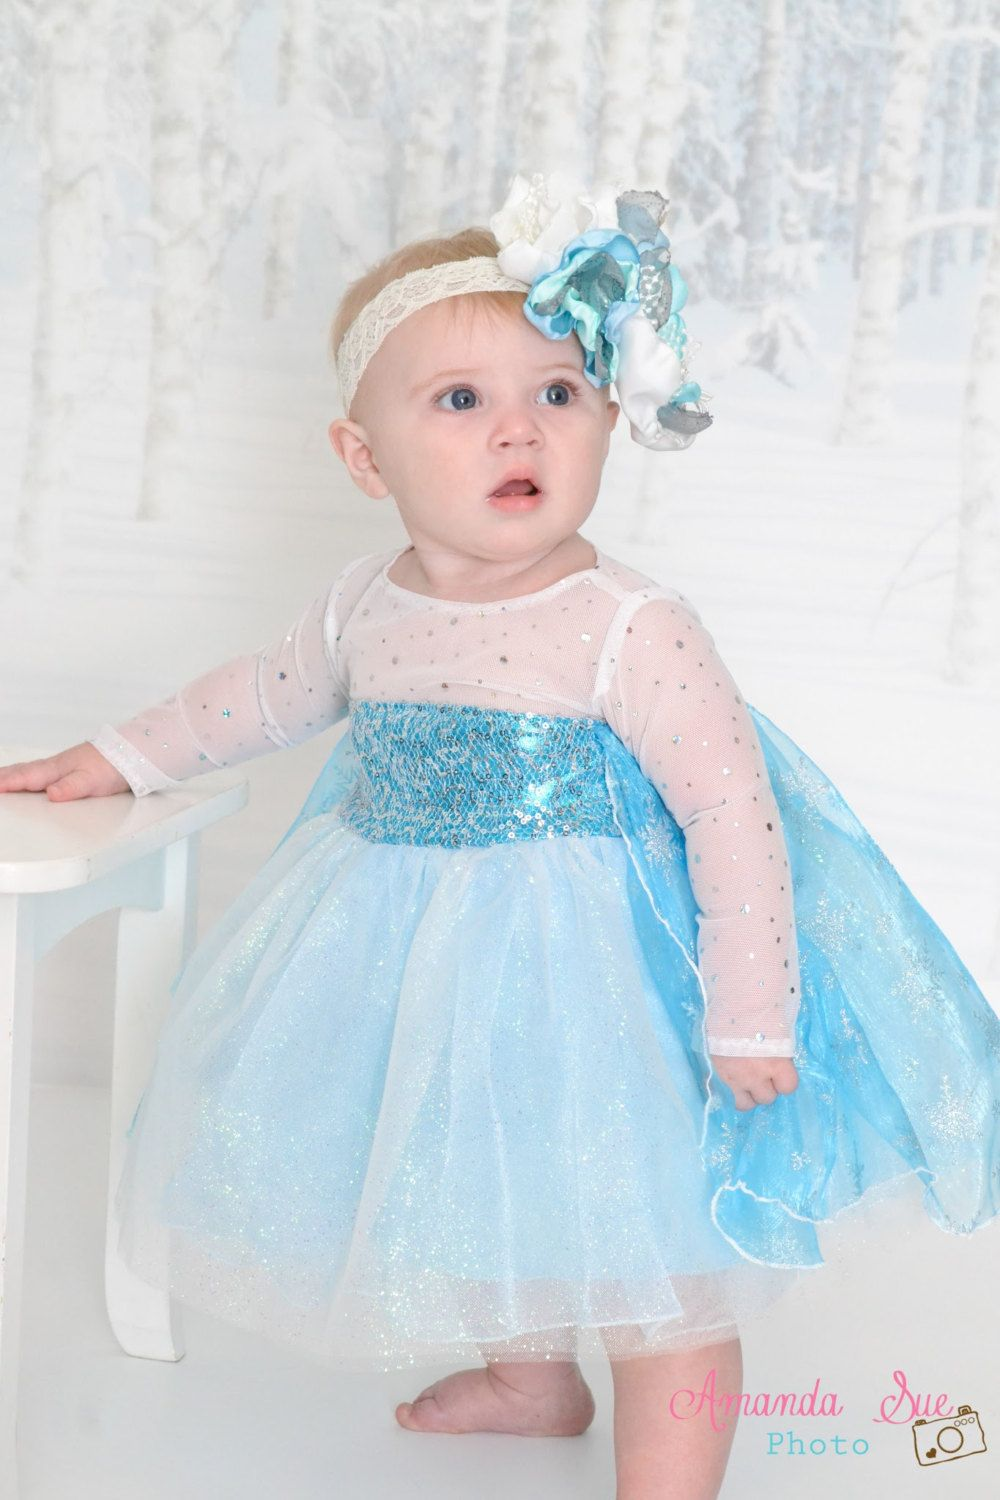 Baby Elsa Infant Frozen Tutu Dress With Snowflake Cape Belle Mom N Bab Long Pants Blue Polkadot Size 4t Costume Sparkle By Sosohippo On Etsy